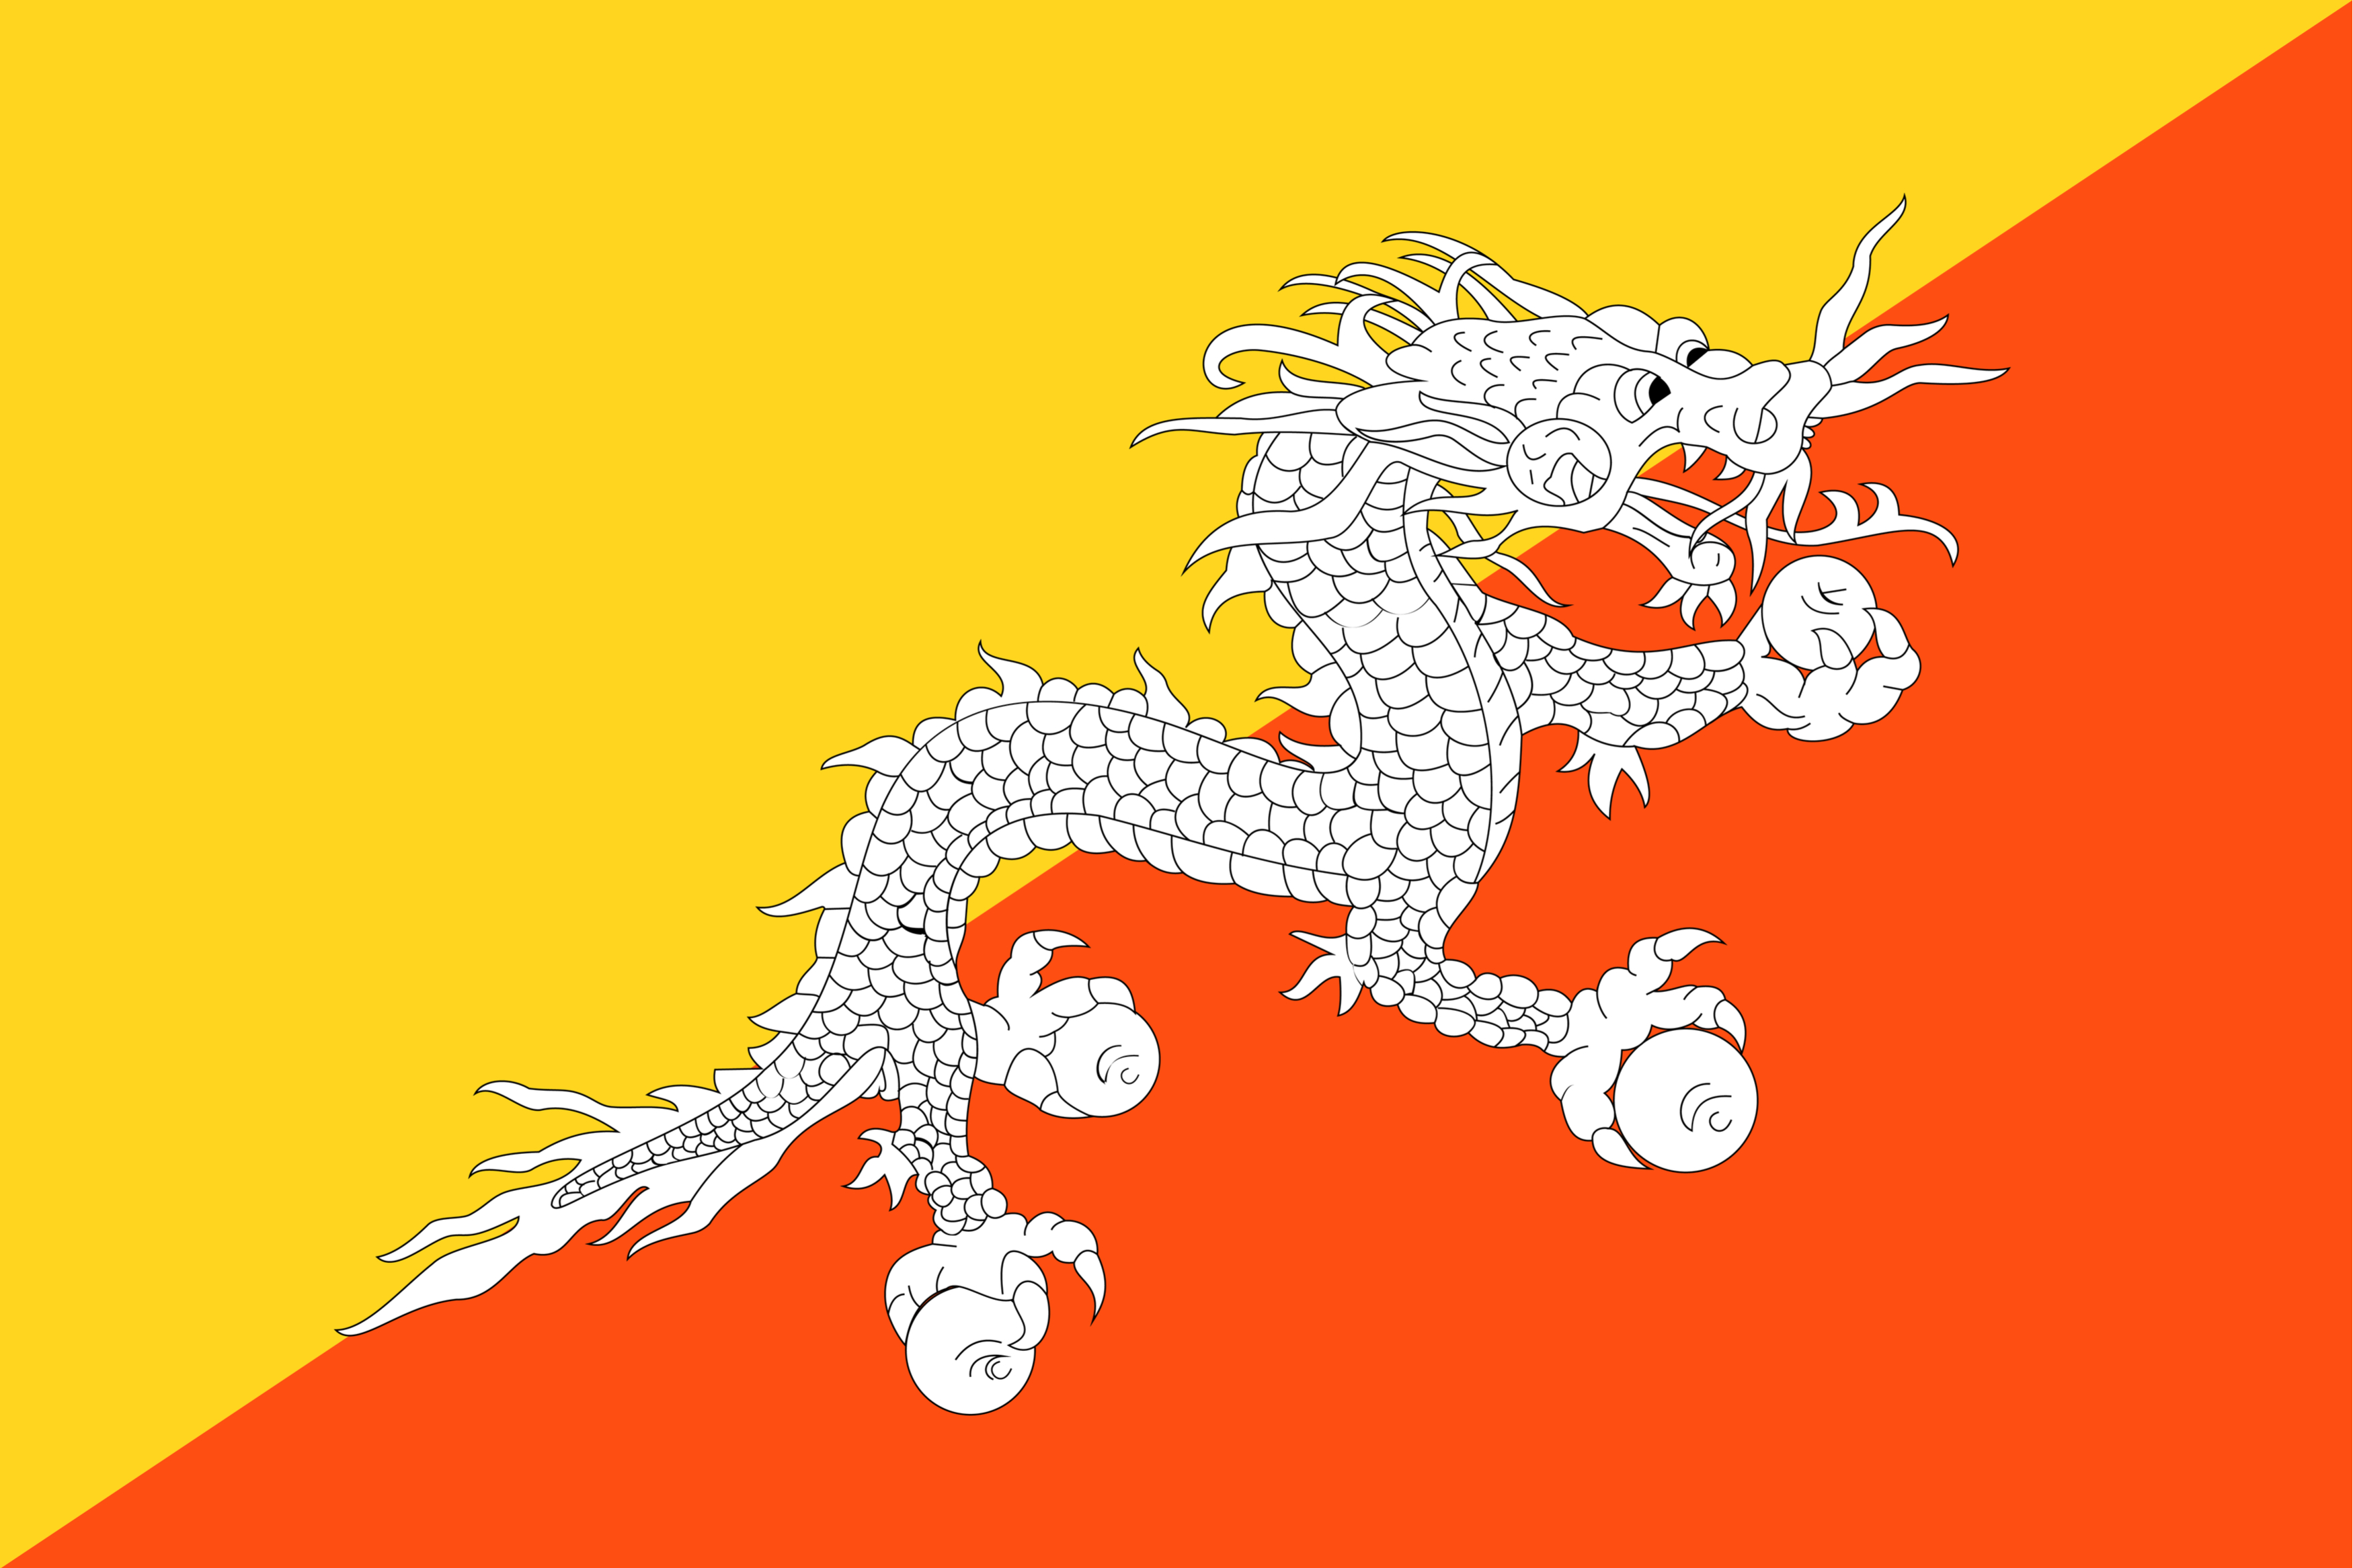 The National Flag of Bhutan is diagonally divided into the upper yellow triangle and the lower orange triangle; featuring a white dragon in its center.